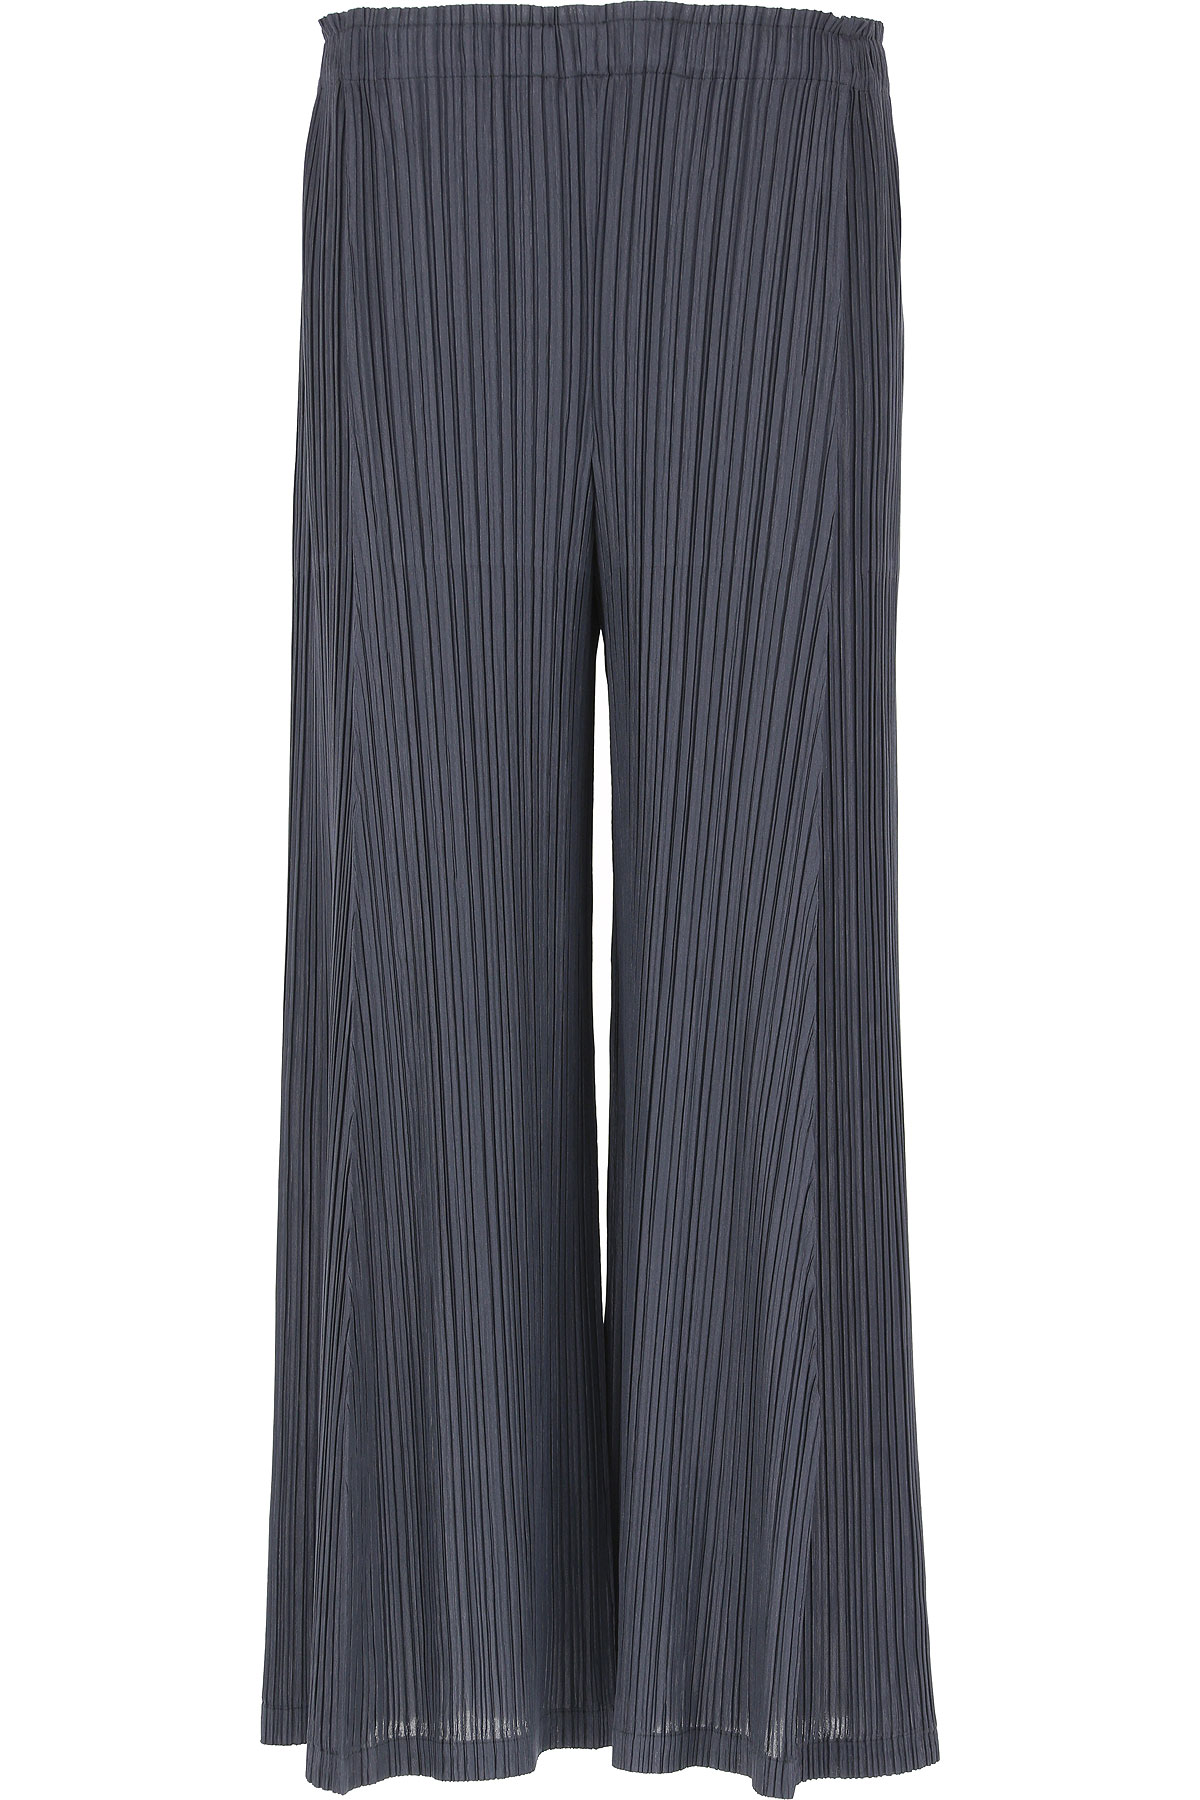 Image of Issey Miyake Pants for Women, Ink Navy, polyester, 2017